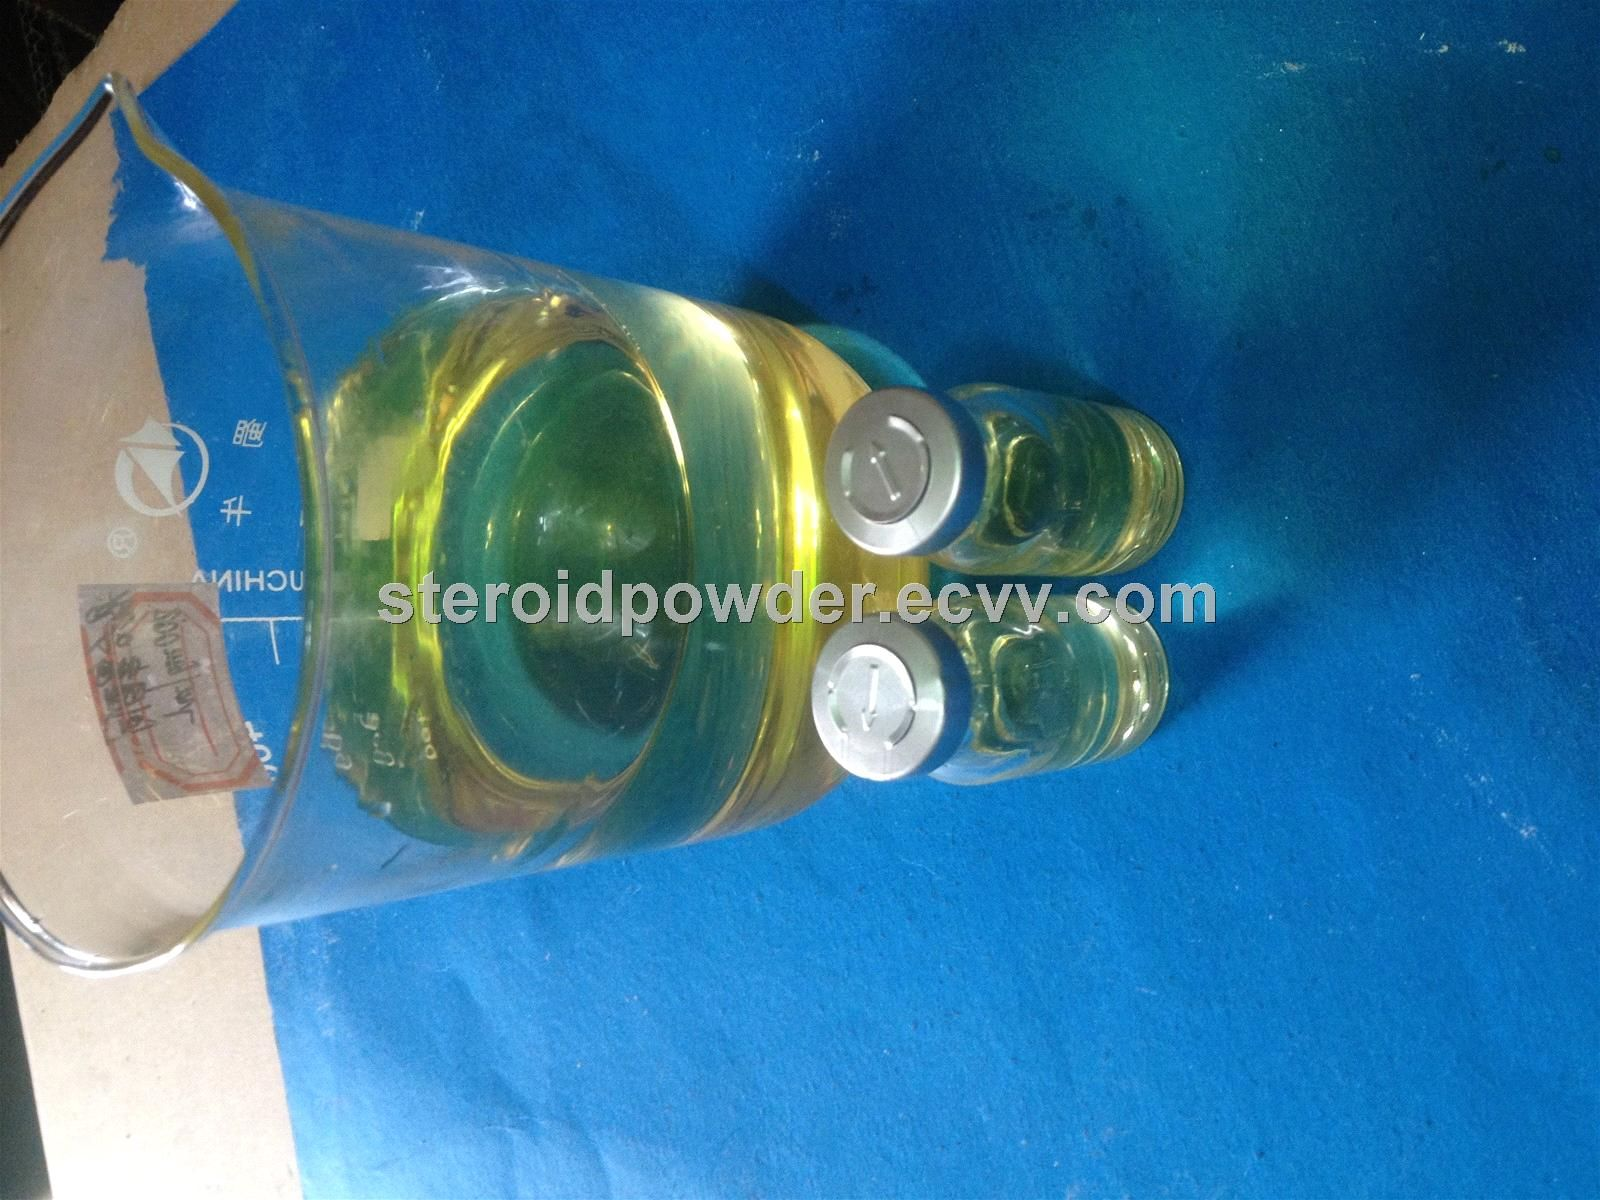 250mg/ml Oil-based Testosterone Cypionate Bodybuilding Anabolic